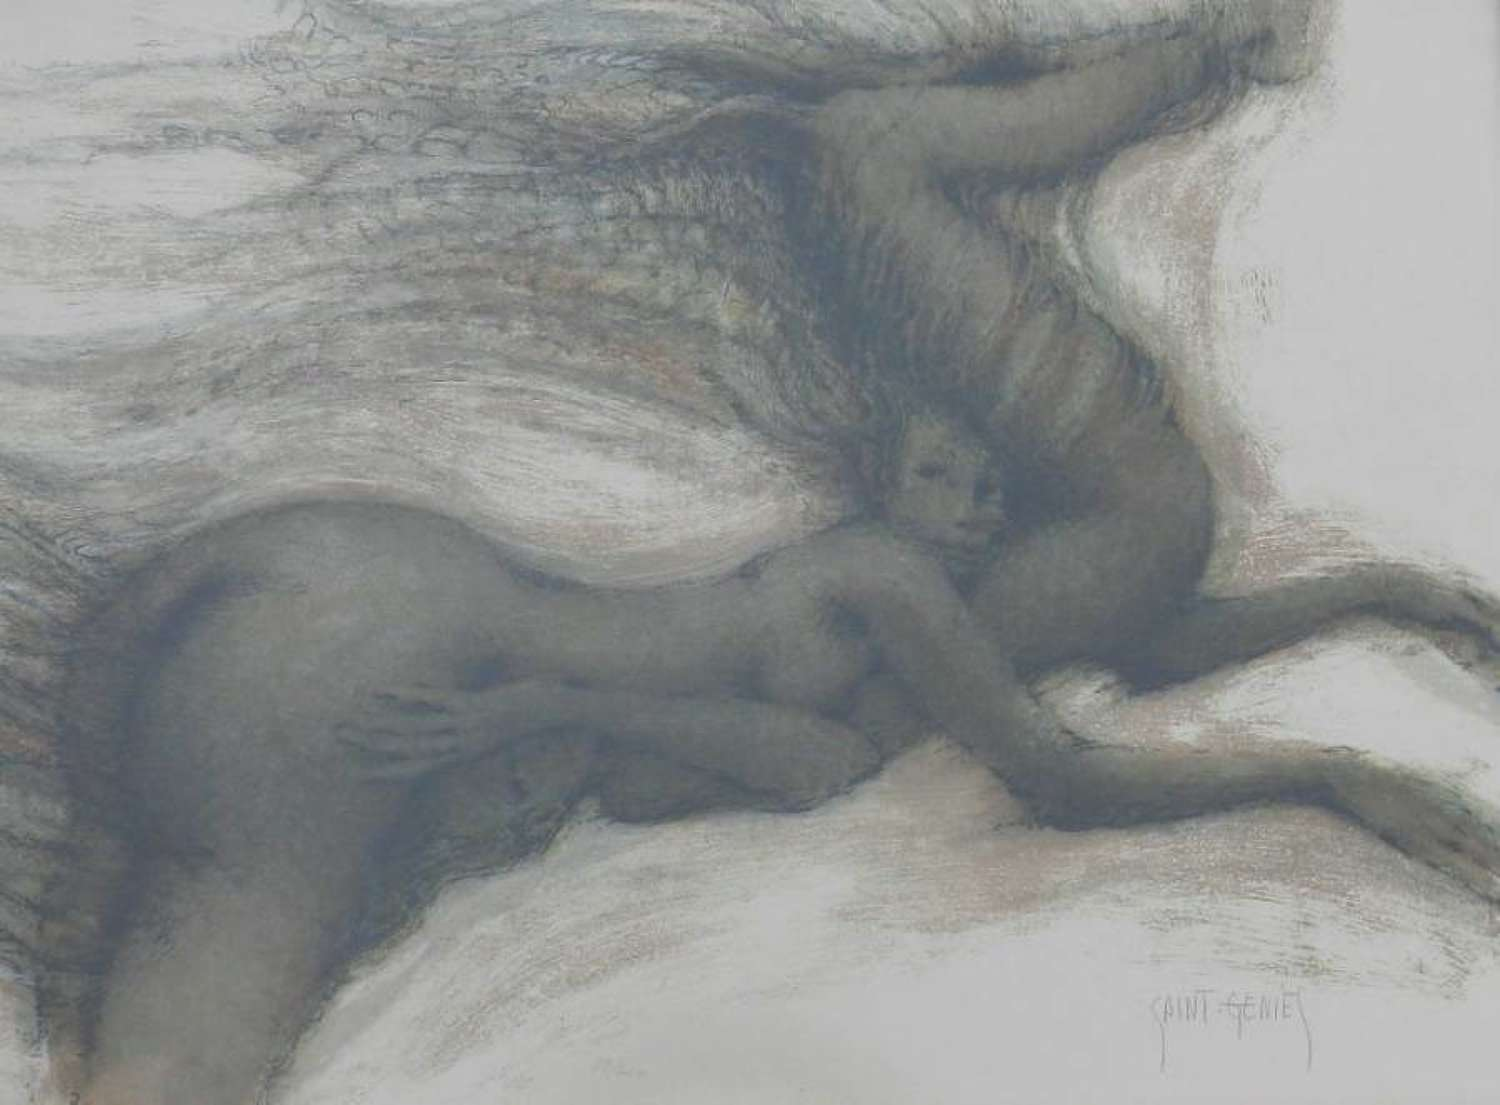 Signed Lithograph Anthropomorphic Nudes Horse Saint Genies french 1925-